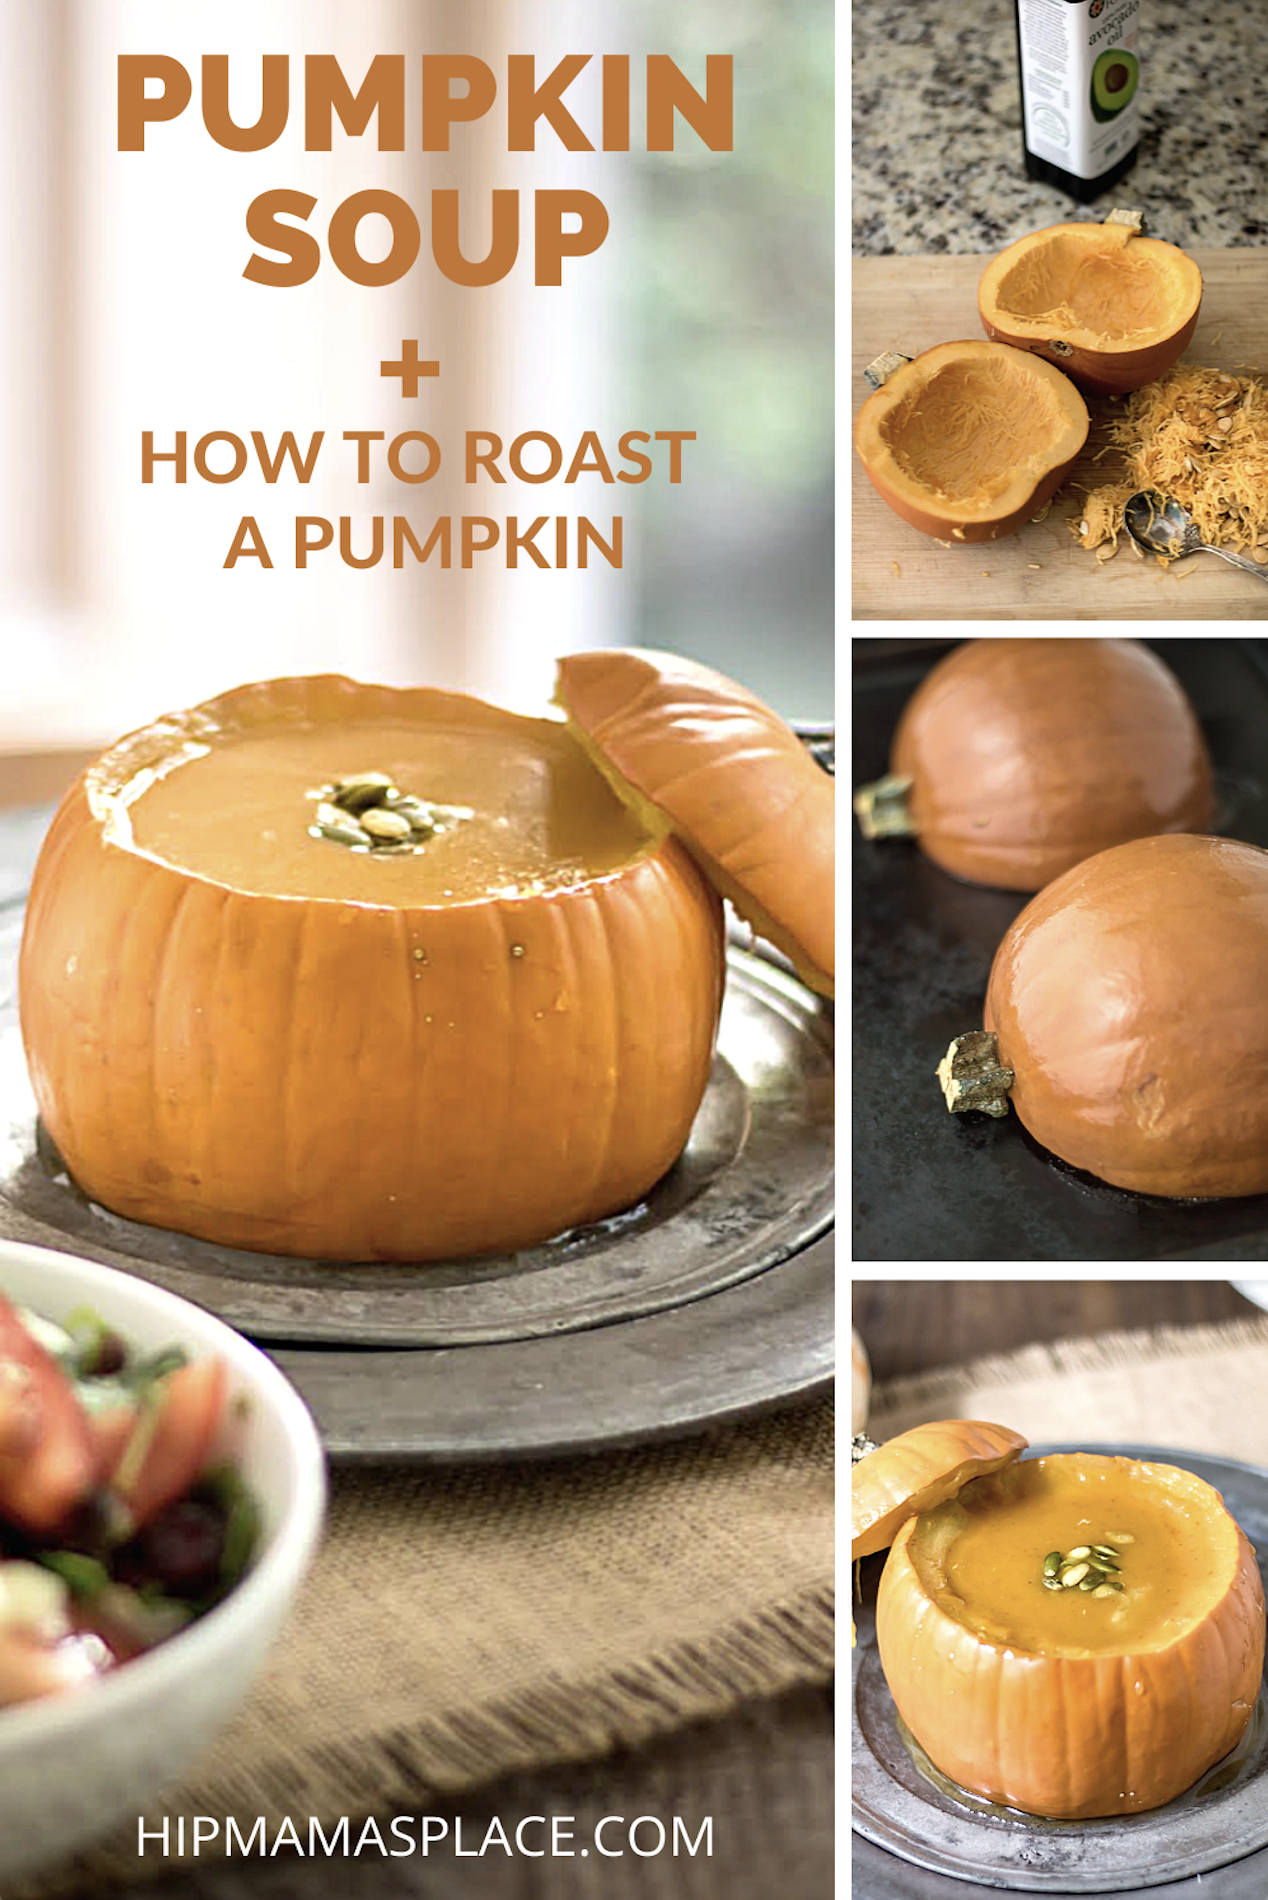 Have you ever wondered how you roast a pumpkin? Well, here, I'm showing you how to make pumpkin soup and how to roast a pumpkin!